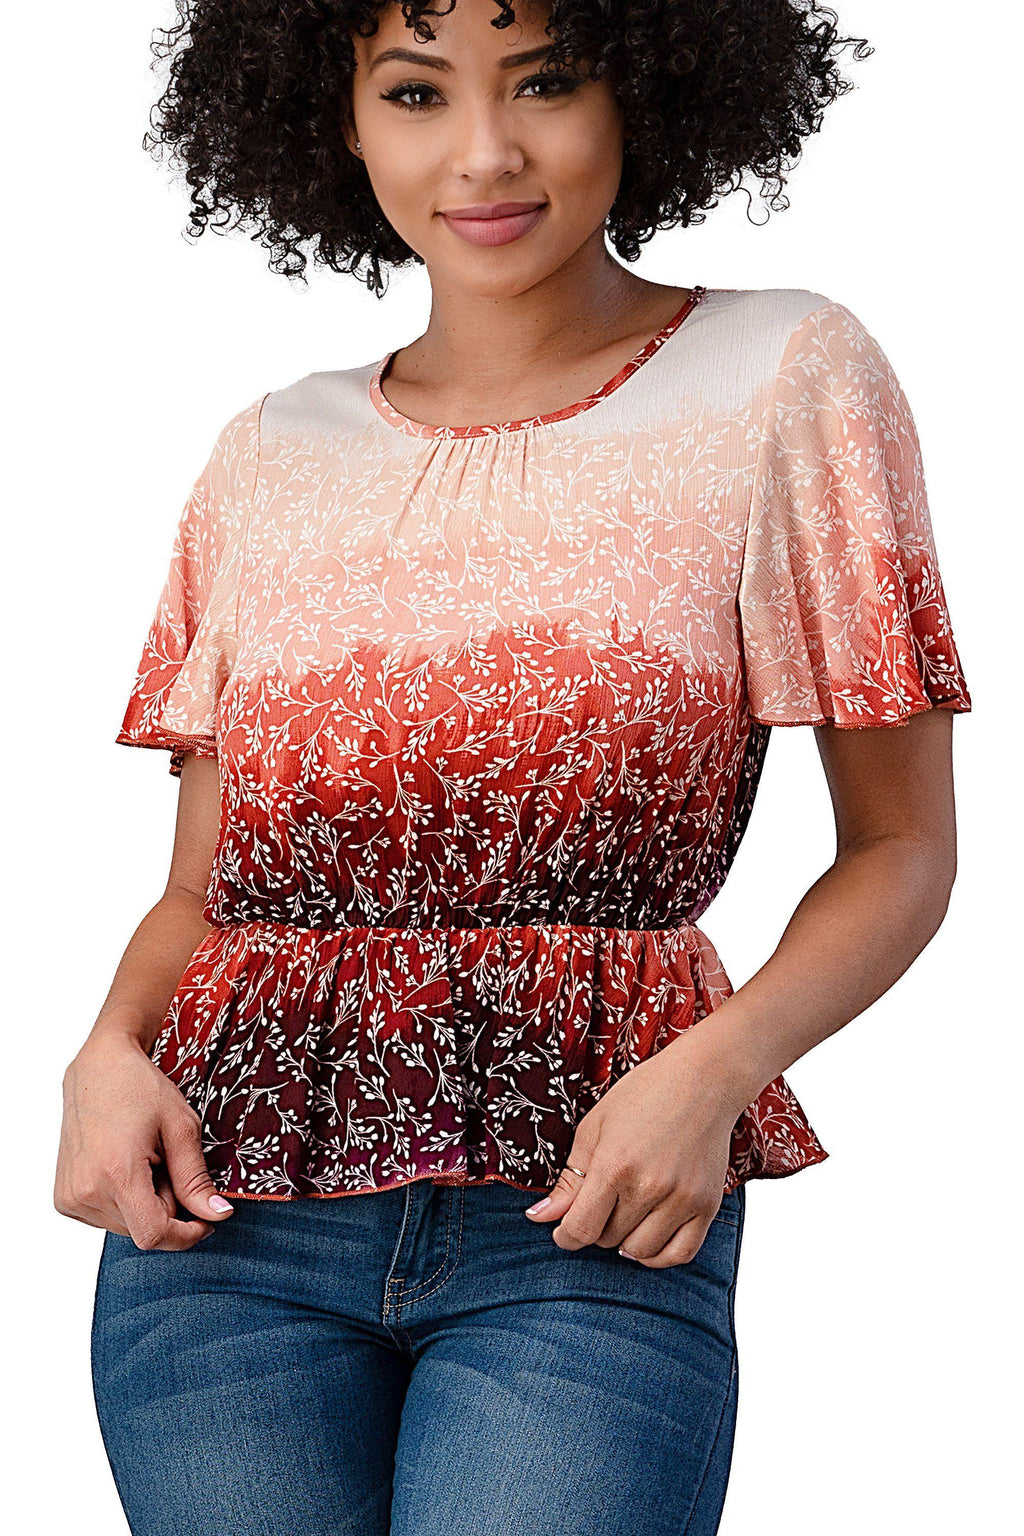 RAYON GAUZE FLORAL DIP DYED PRINTED FLUTTER SHORT SLEEVE PEPLUM BLOUSE